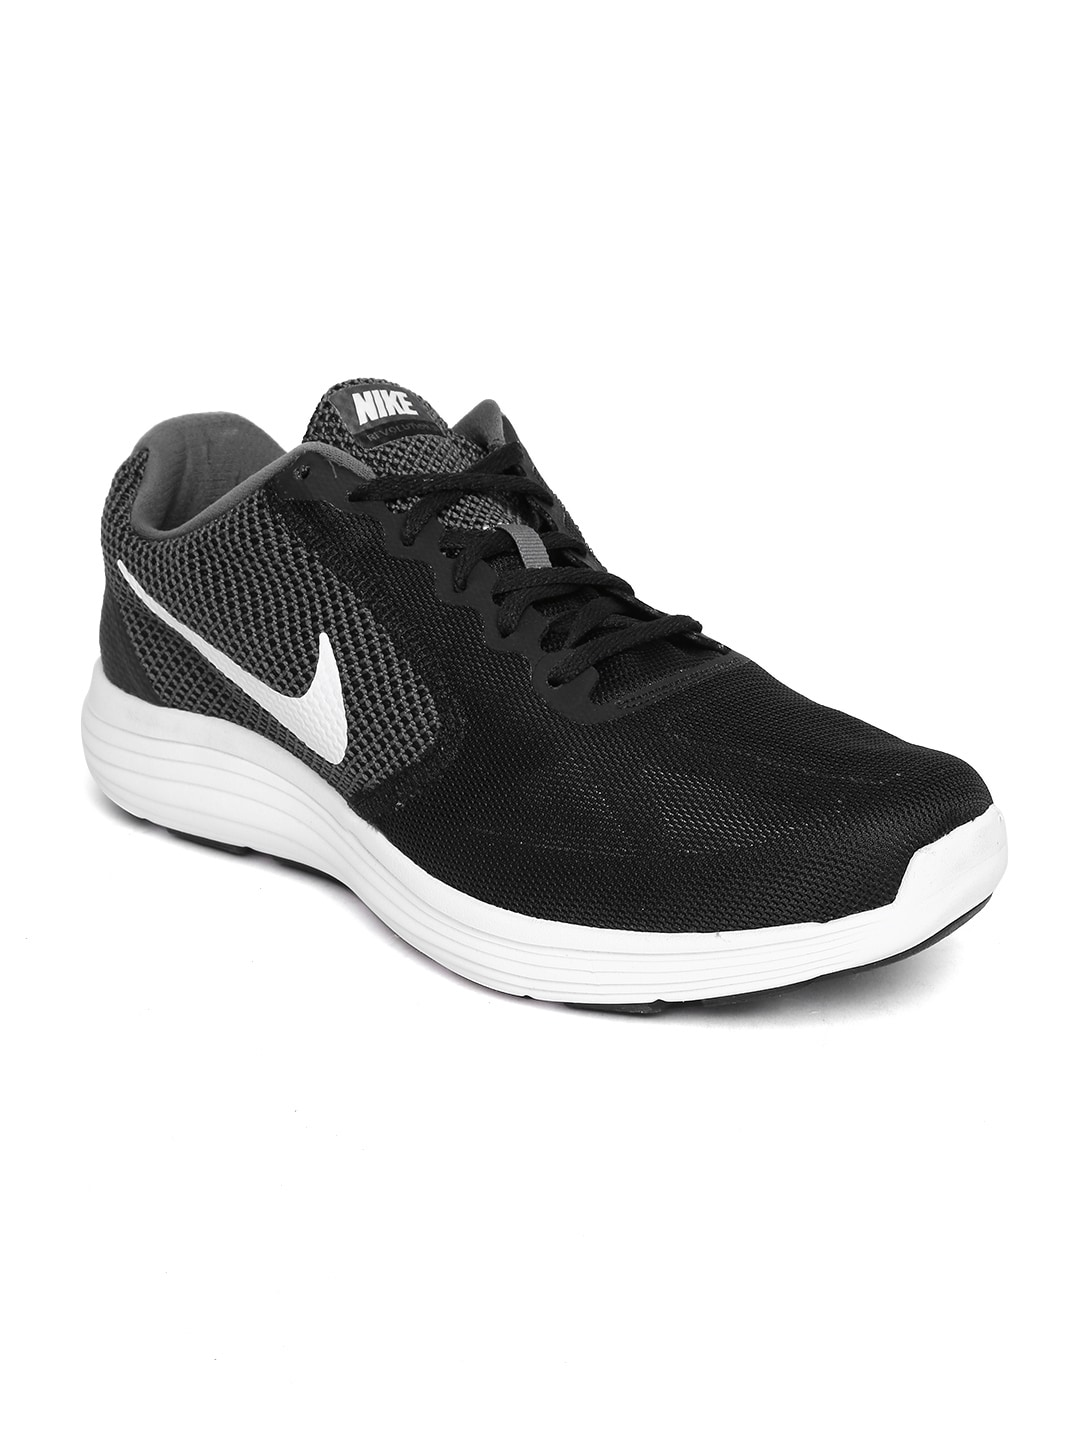 da5b5189680b78 Nike Running Shoes - Buy Nike Running Shoes Online